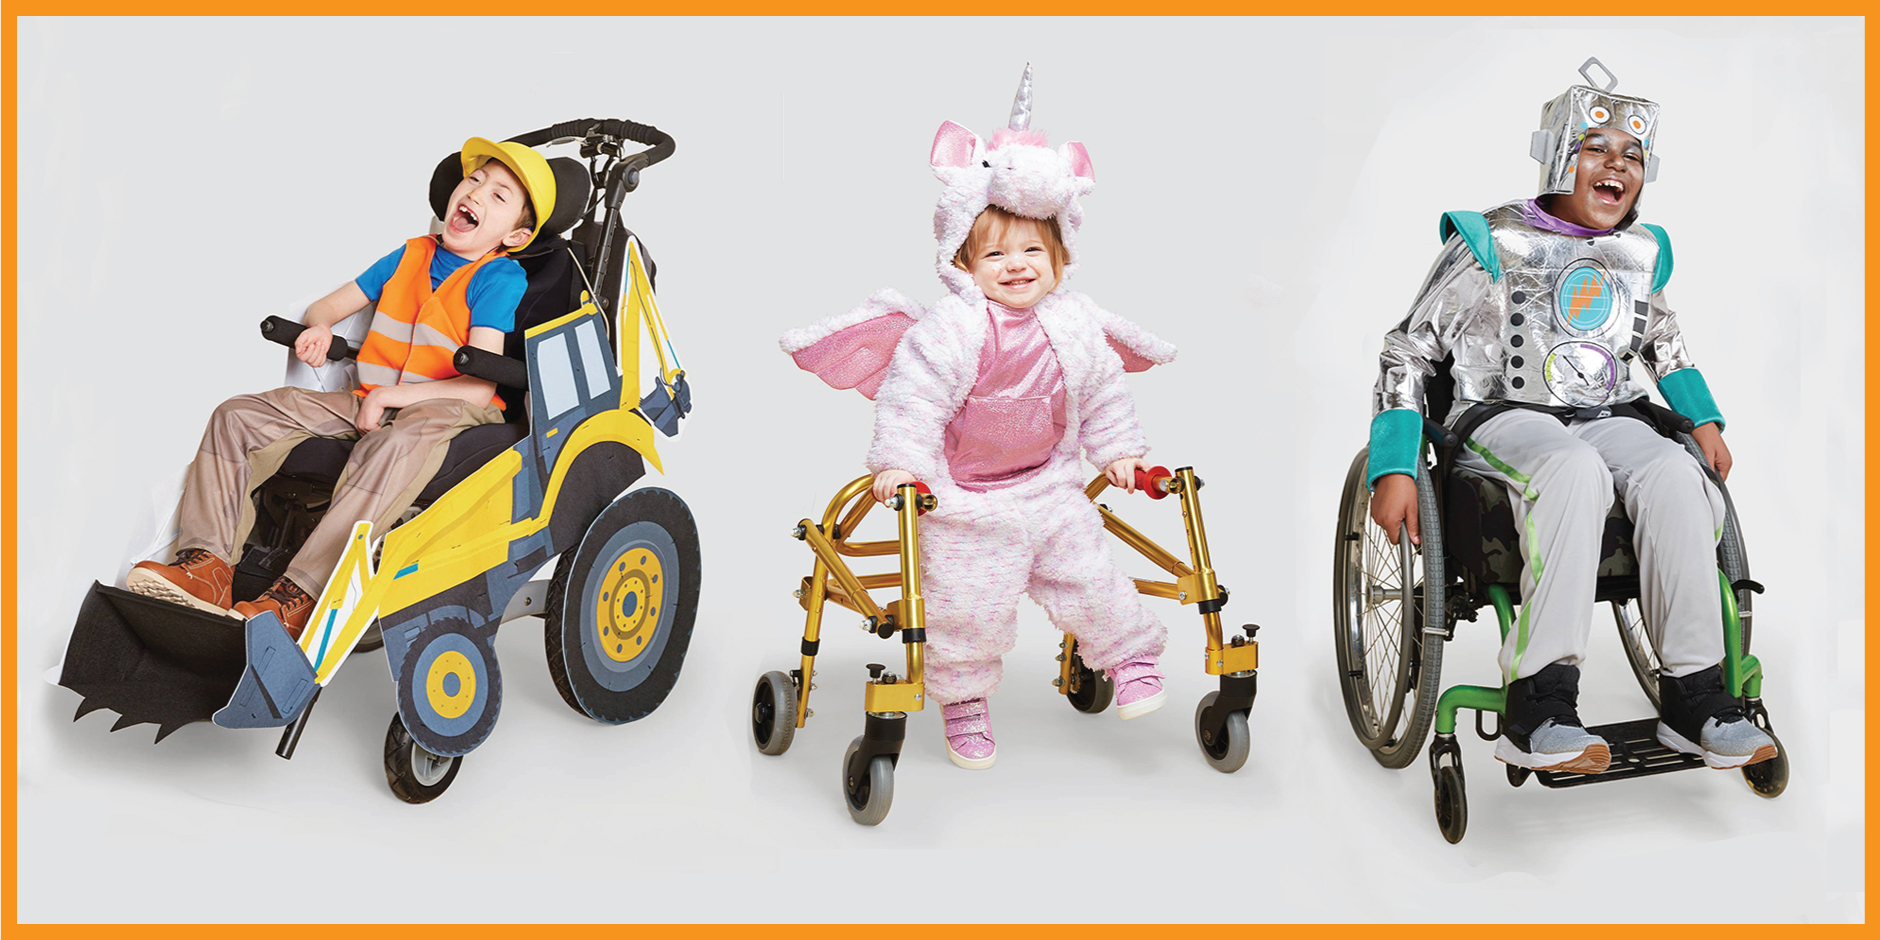 Three children model Target's latest adaptive and sensory-friendly costumes.